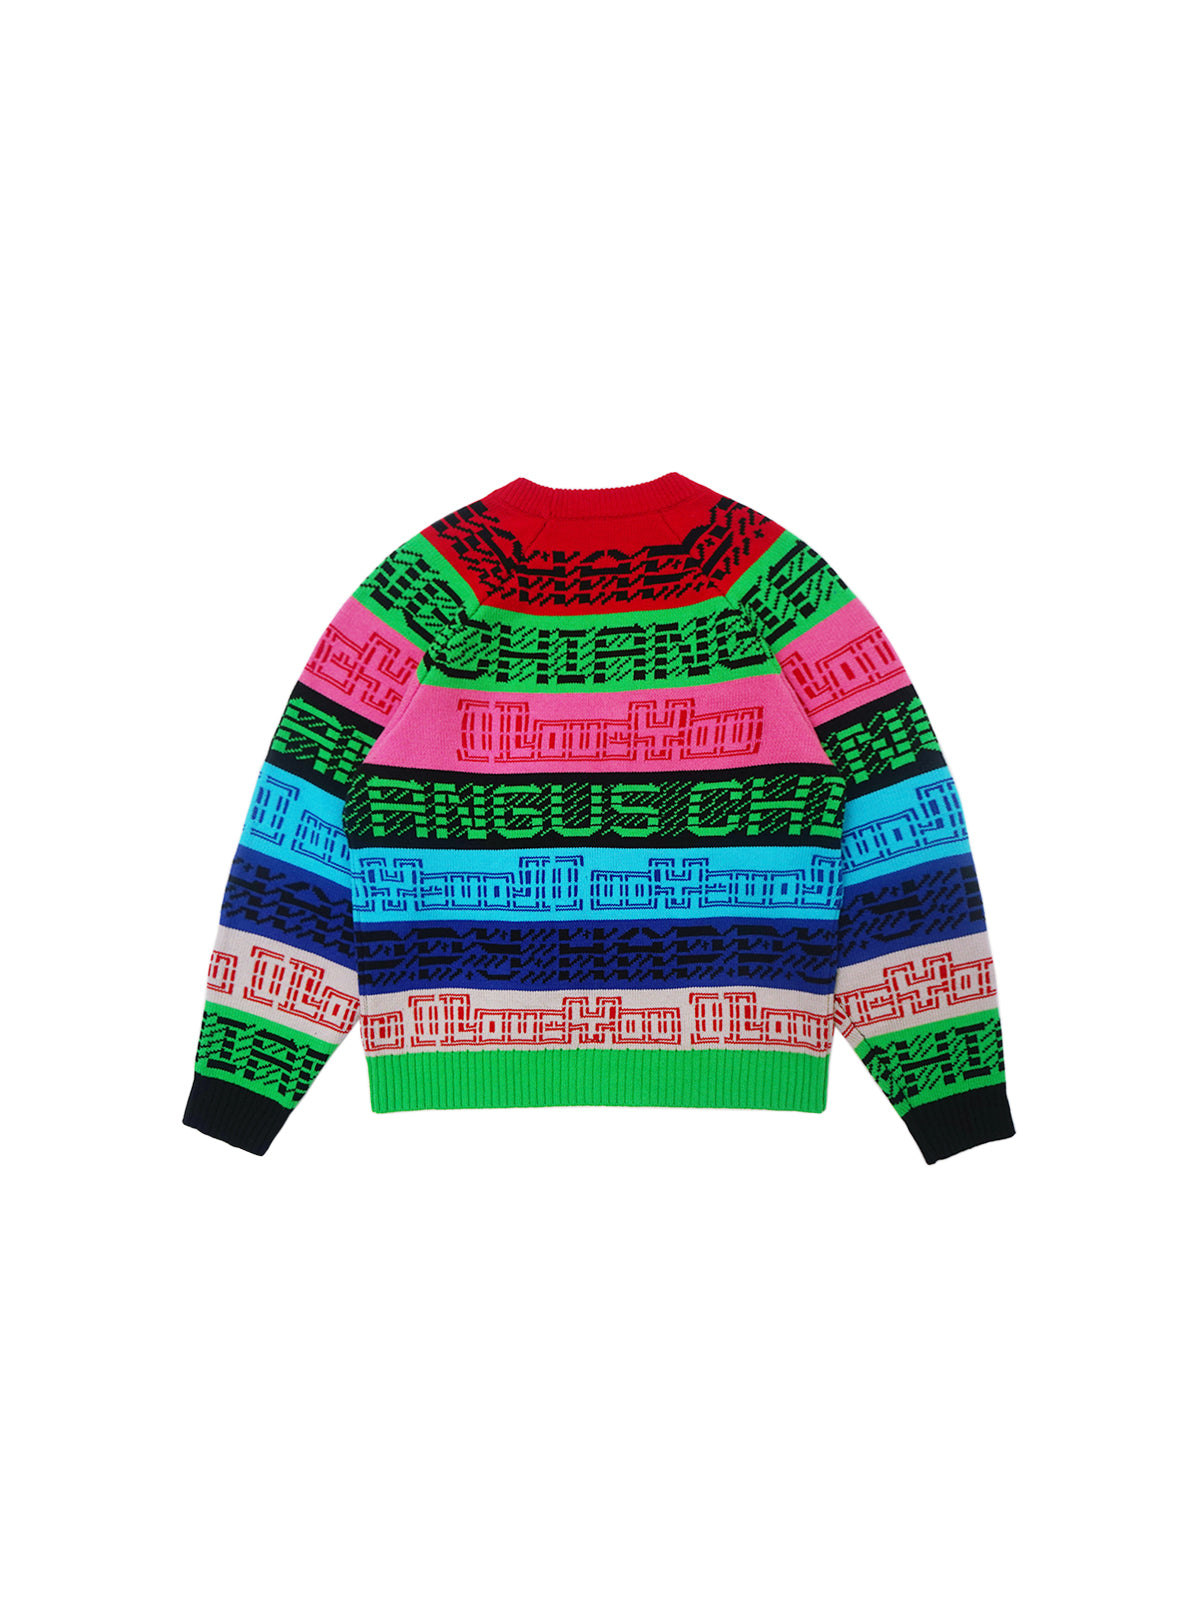 MESSAGE FROM THE FUTURE COLORFUL LOGO STRIPE SWEATER